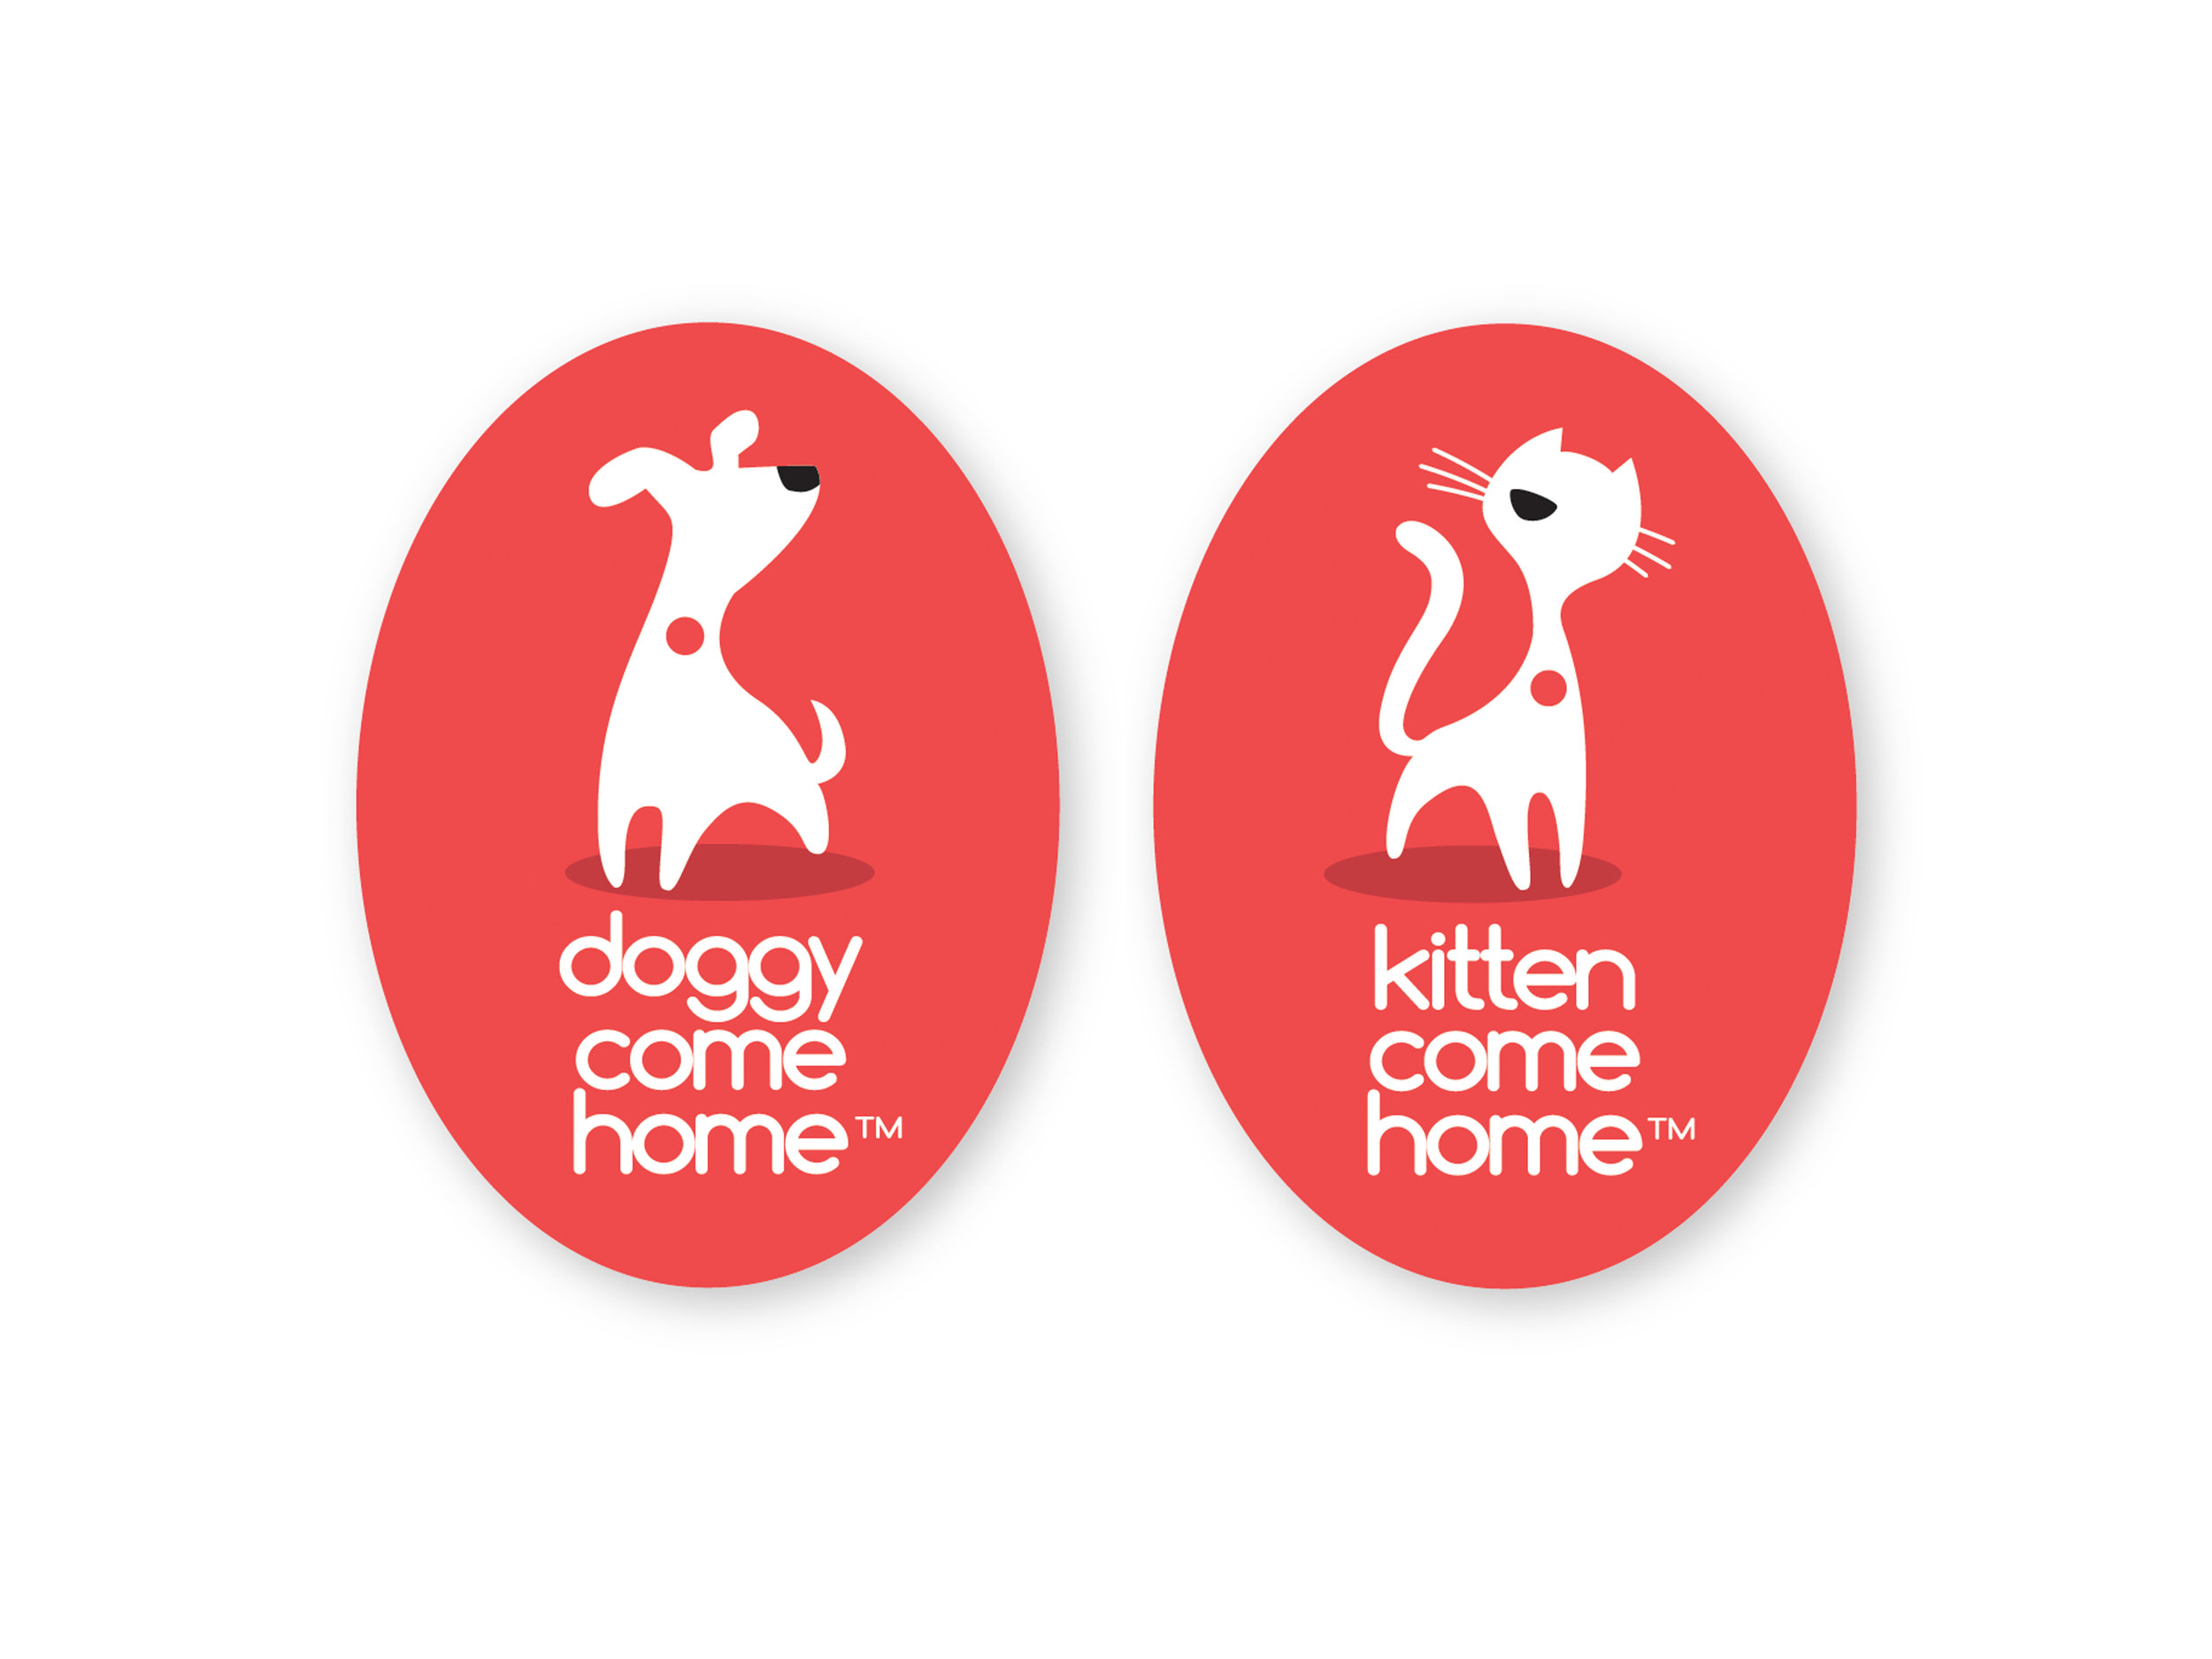 CLICK HERE TO SEE OTHER ASSETS THAT WHOVILLE HAS CREATED FOR DOGGY & KITTEN COME HOME